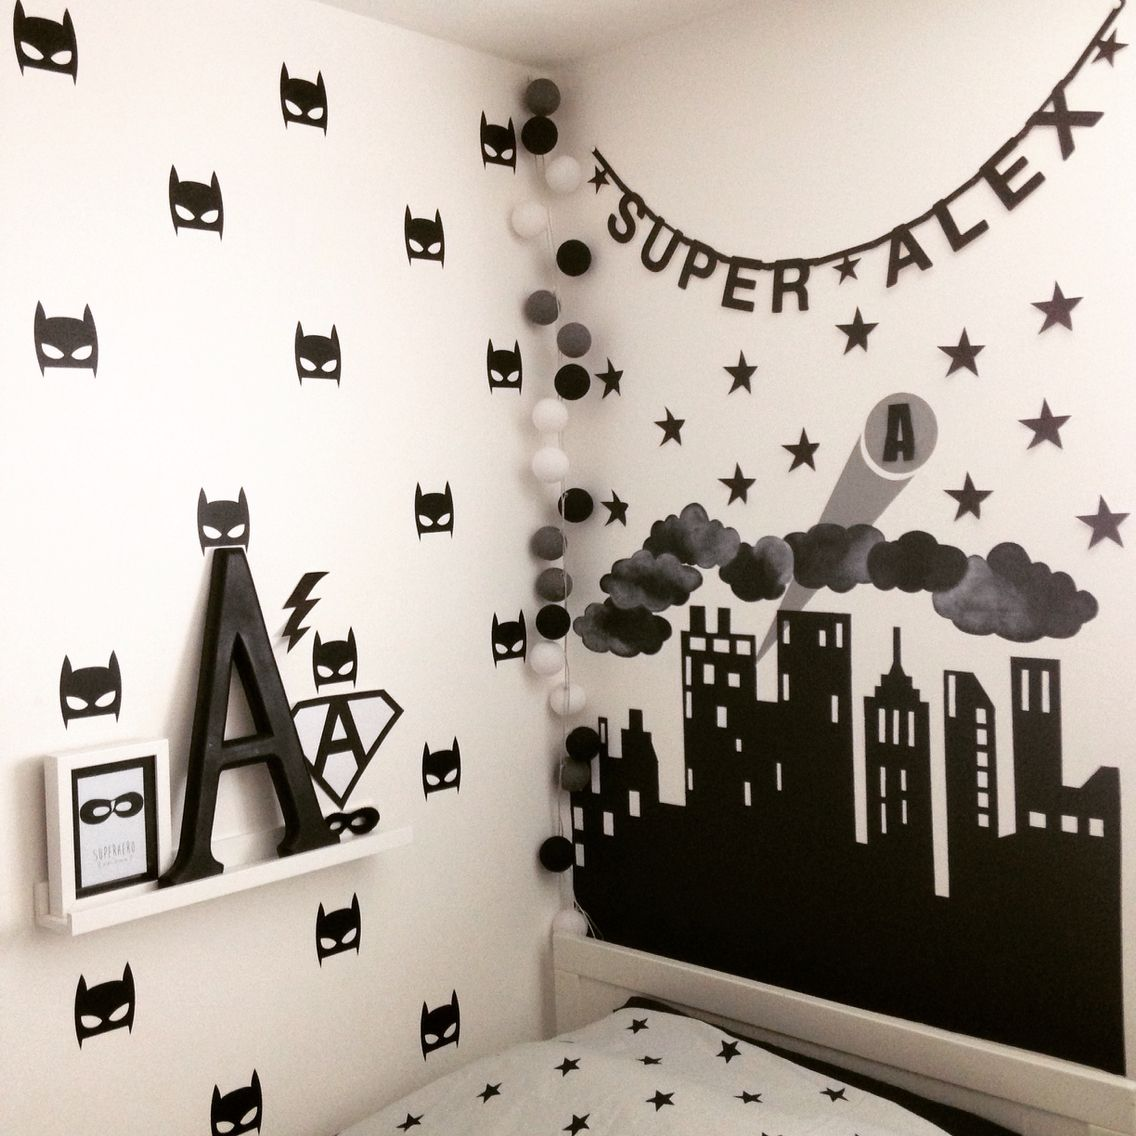 Superhero Monochrome Bedroom